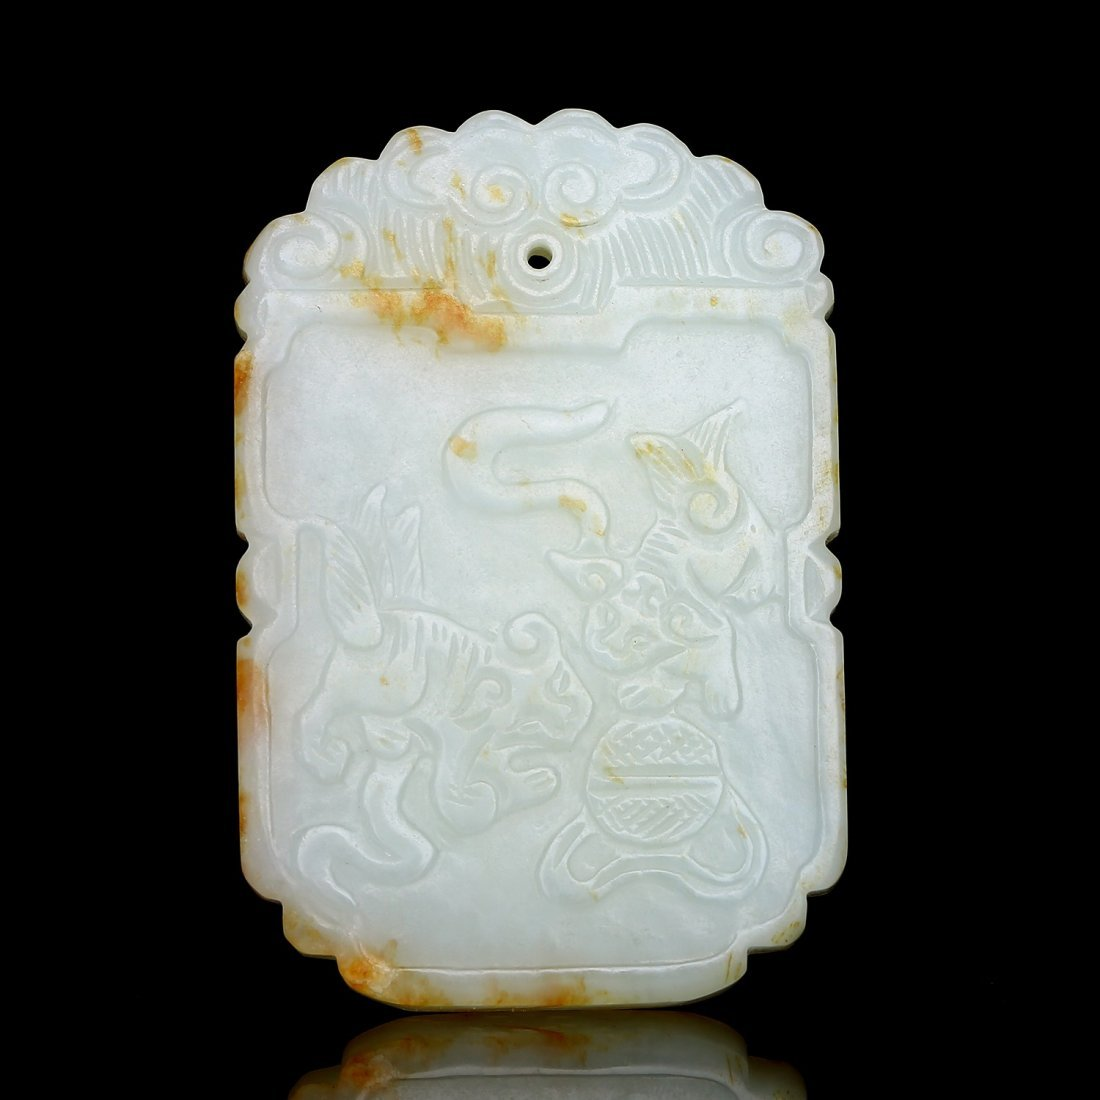 Chinese Qing Dynasty Hetian White Jade Pendant